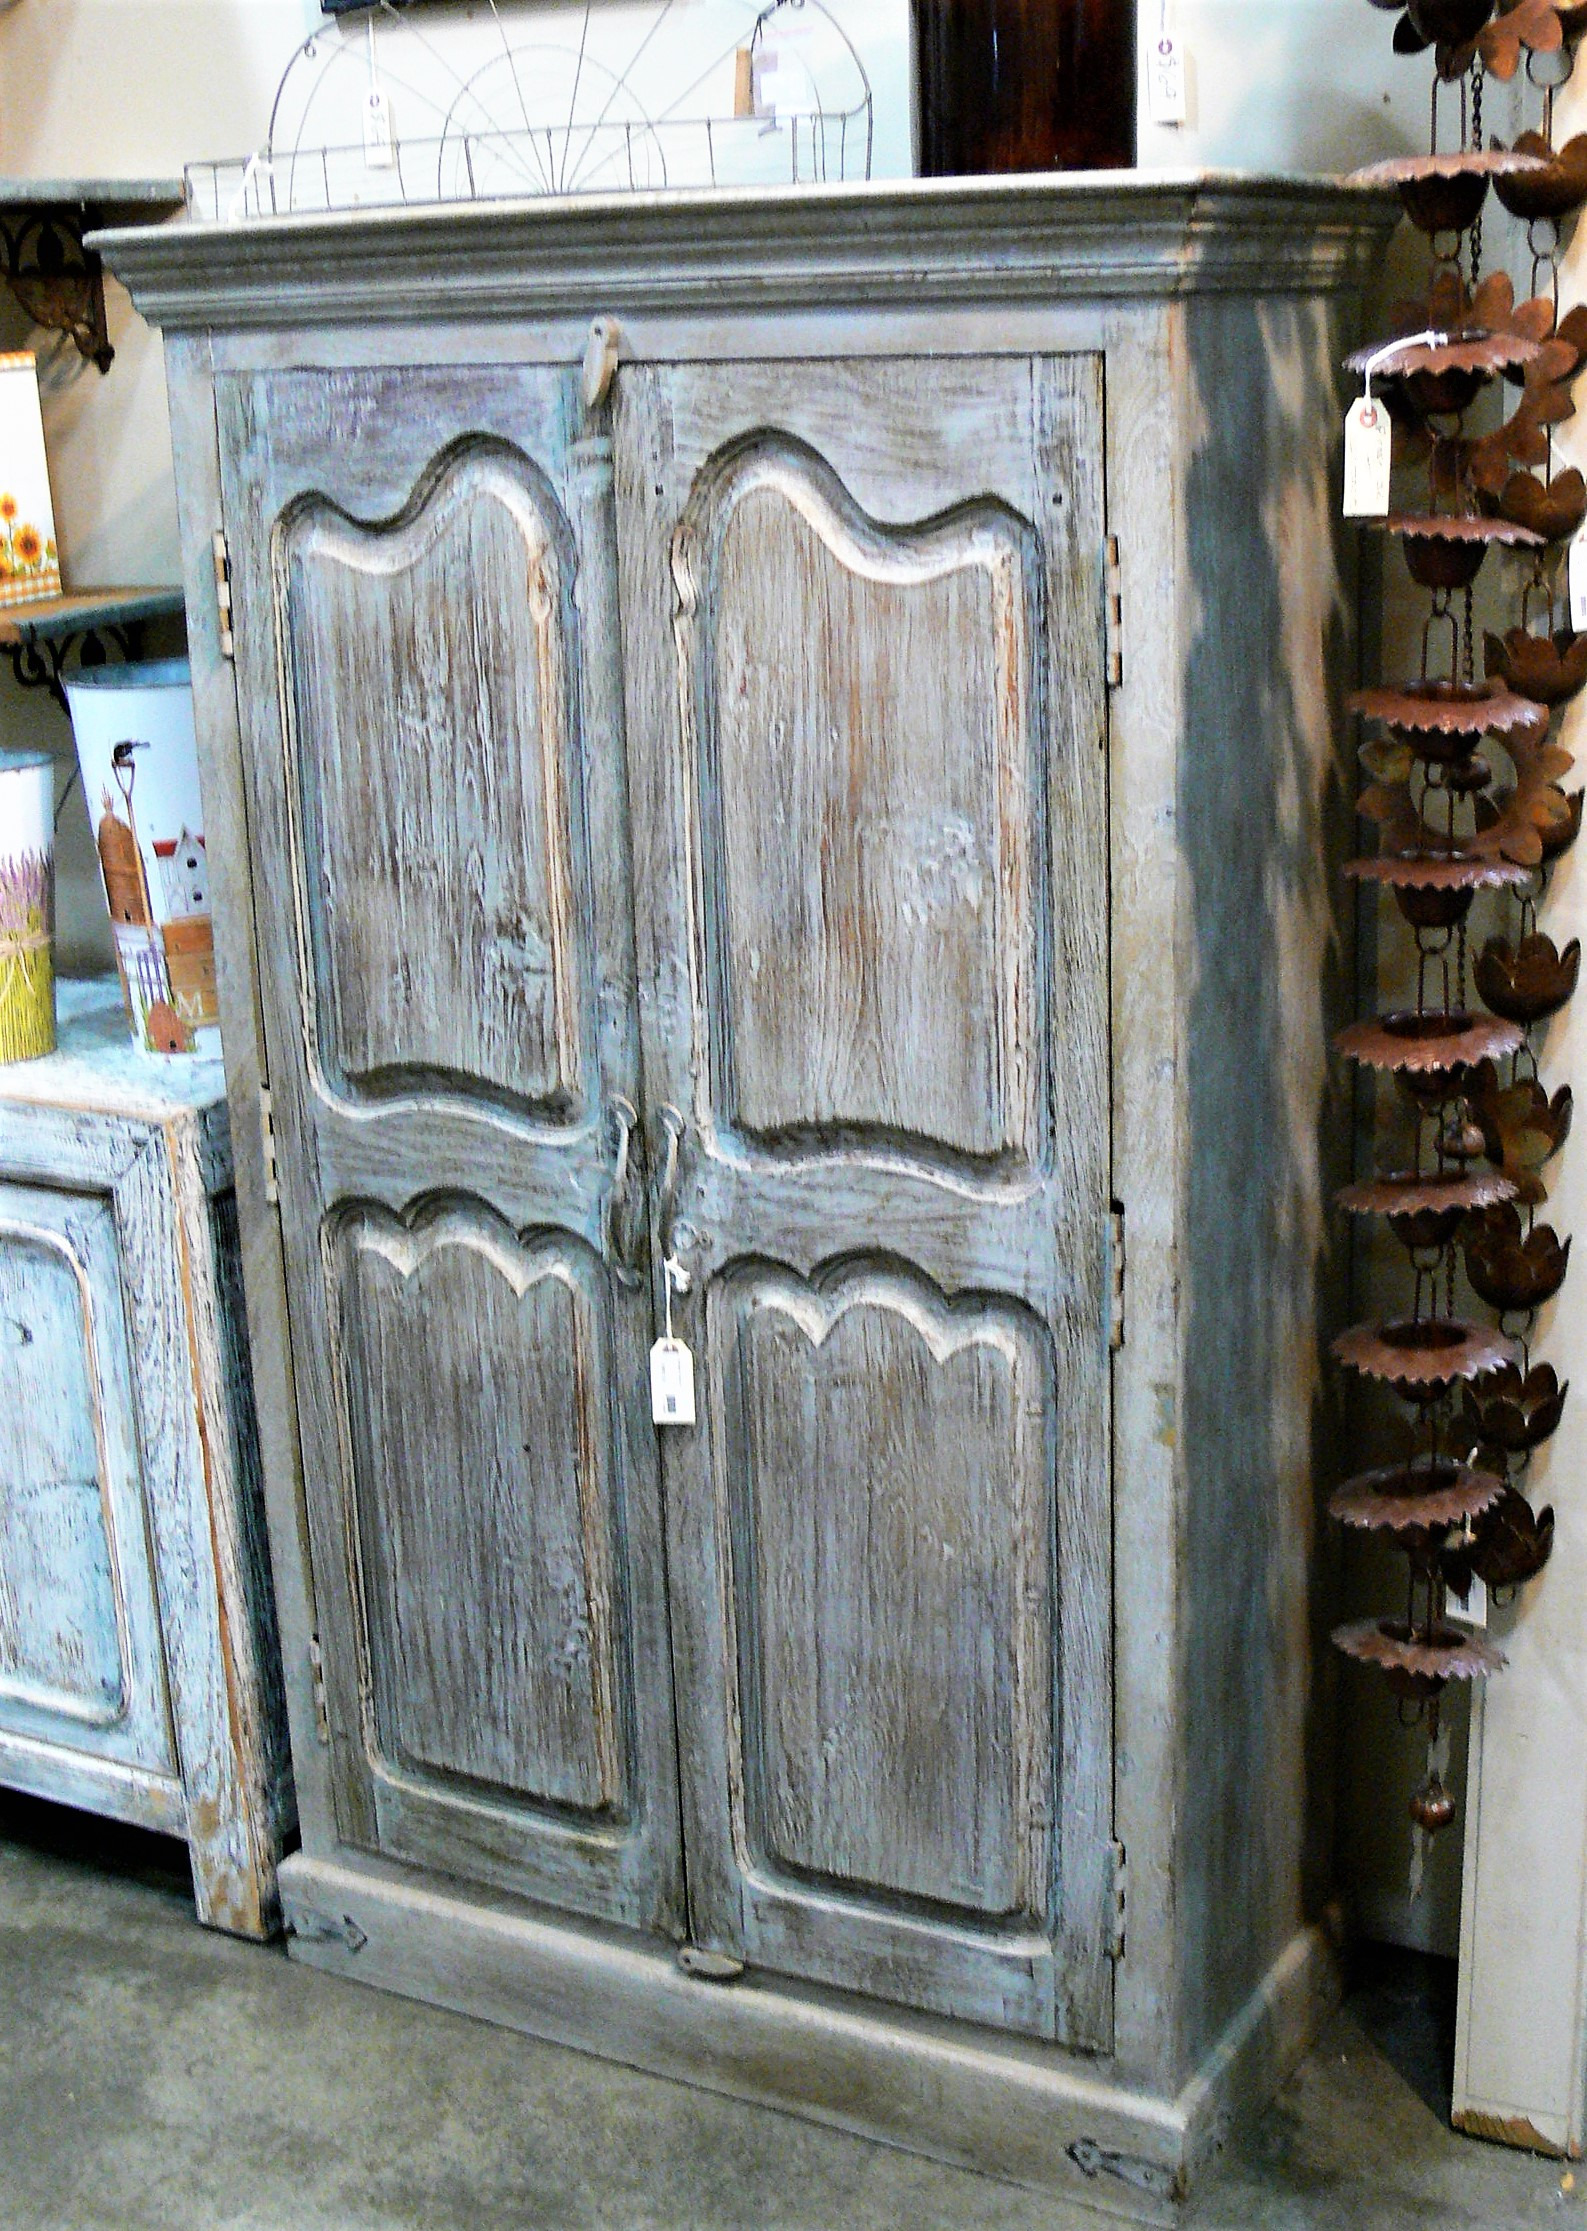 armoires tall cabinets page id=177